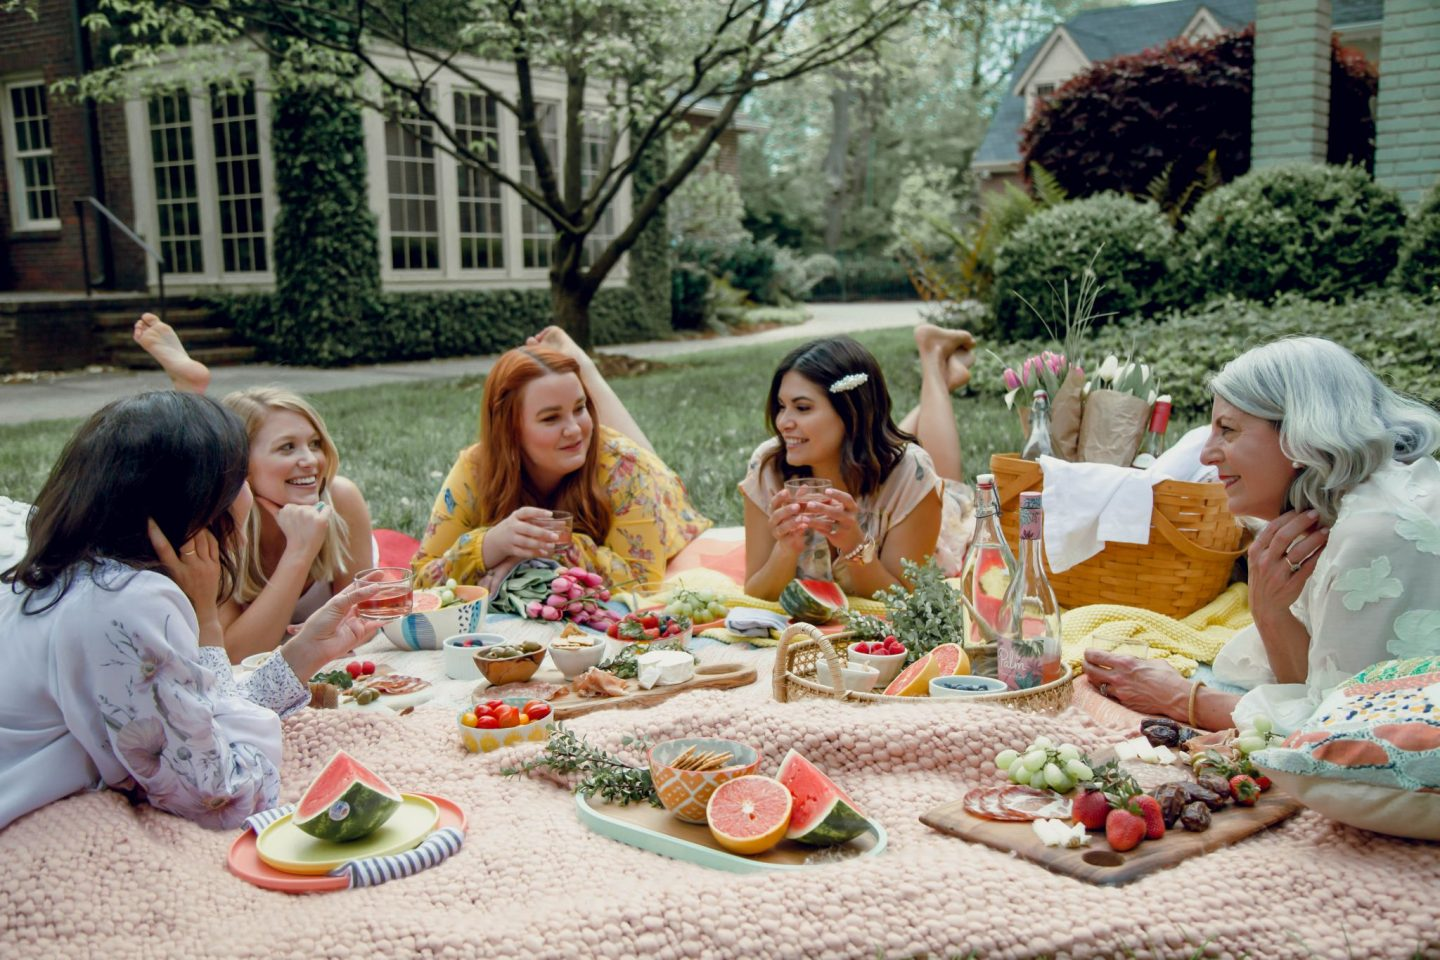 Picnic Party - Charlotte Influencers - Springtime - Lauren Schwaiger Blog